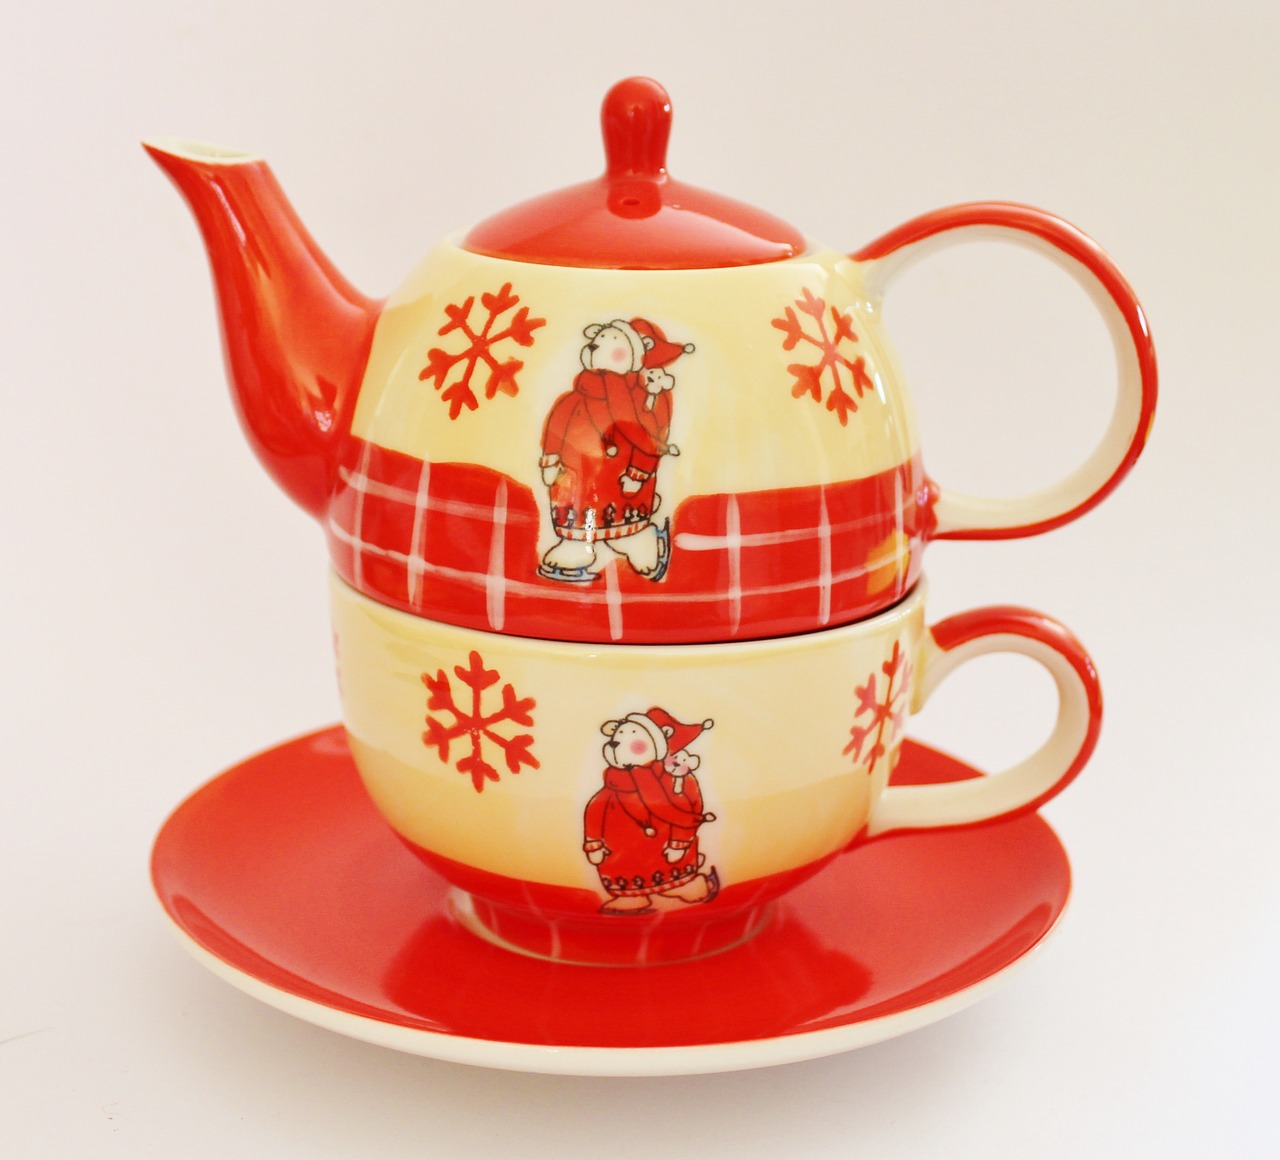 teapot,cup,tea,tableware,porcelain,free pictures, free photos, free images, royalty free, free illustrations